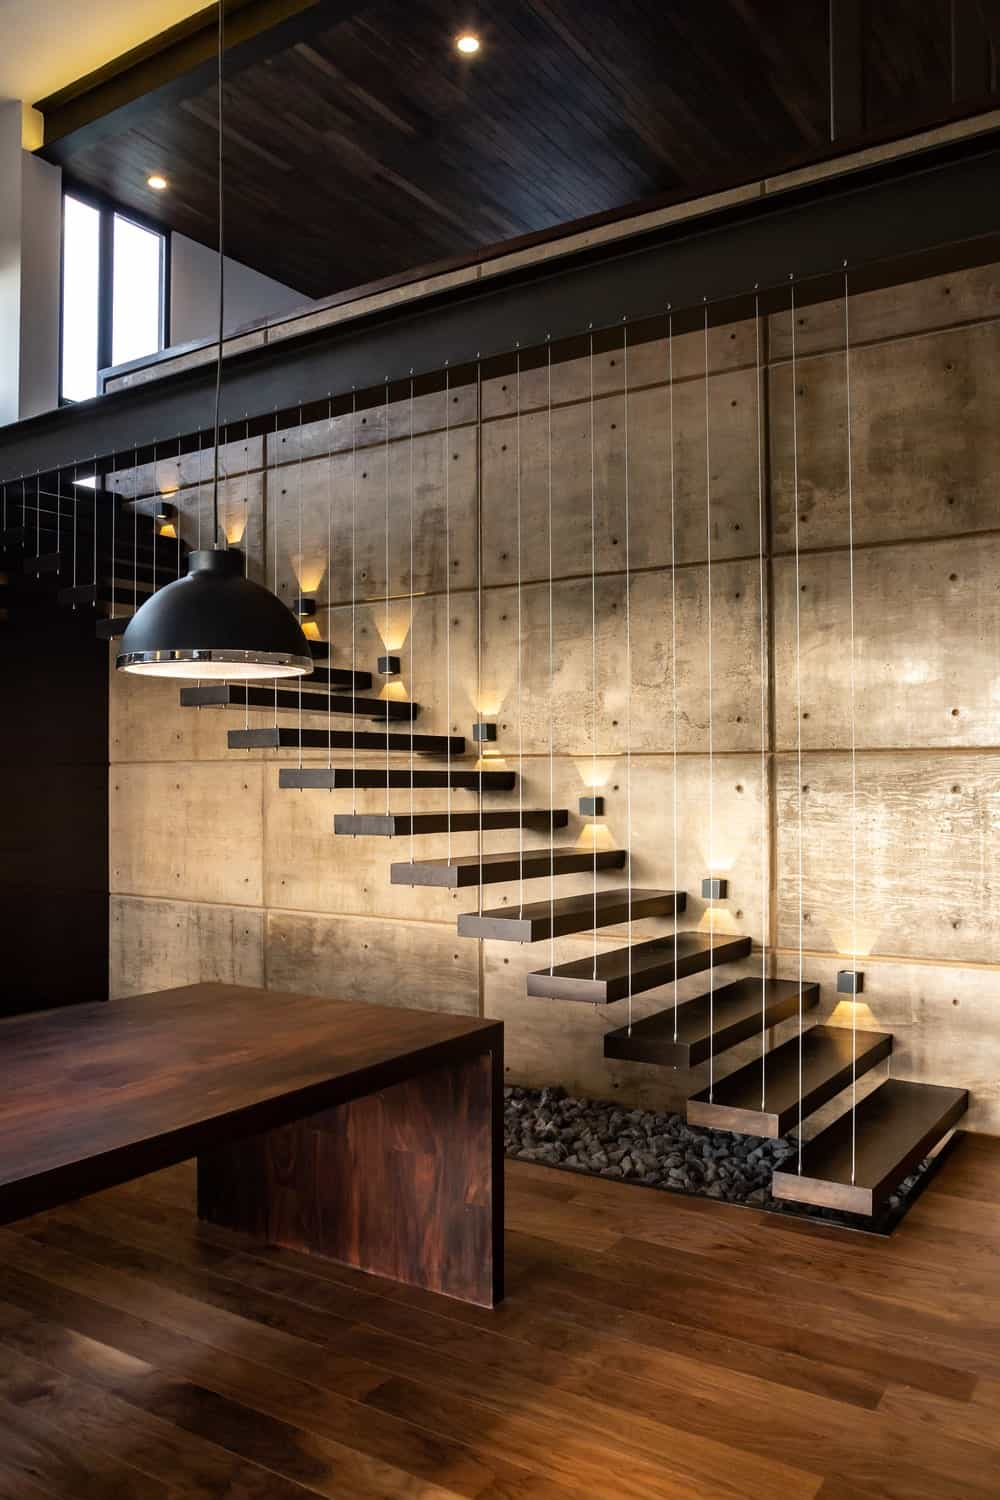 This is a closer look at the stairs with floating steps, modern lighting and gravel underneath.